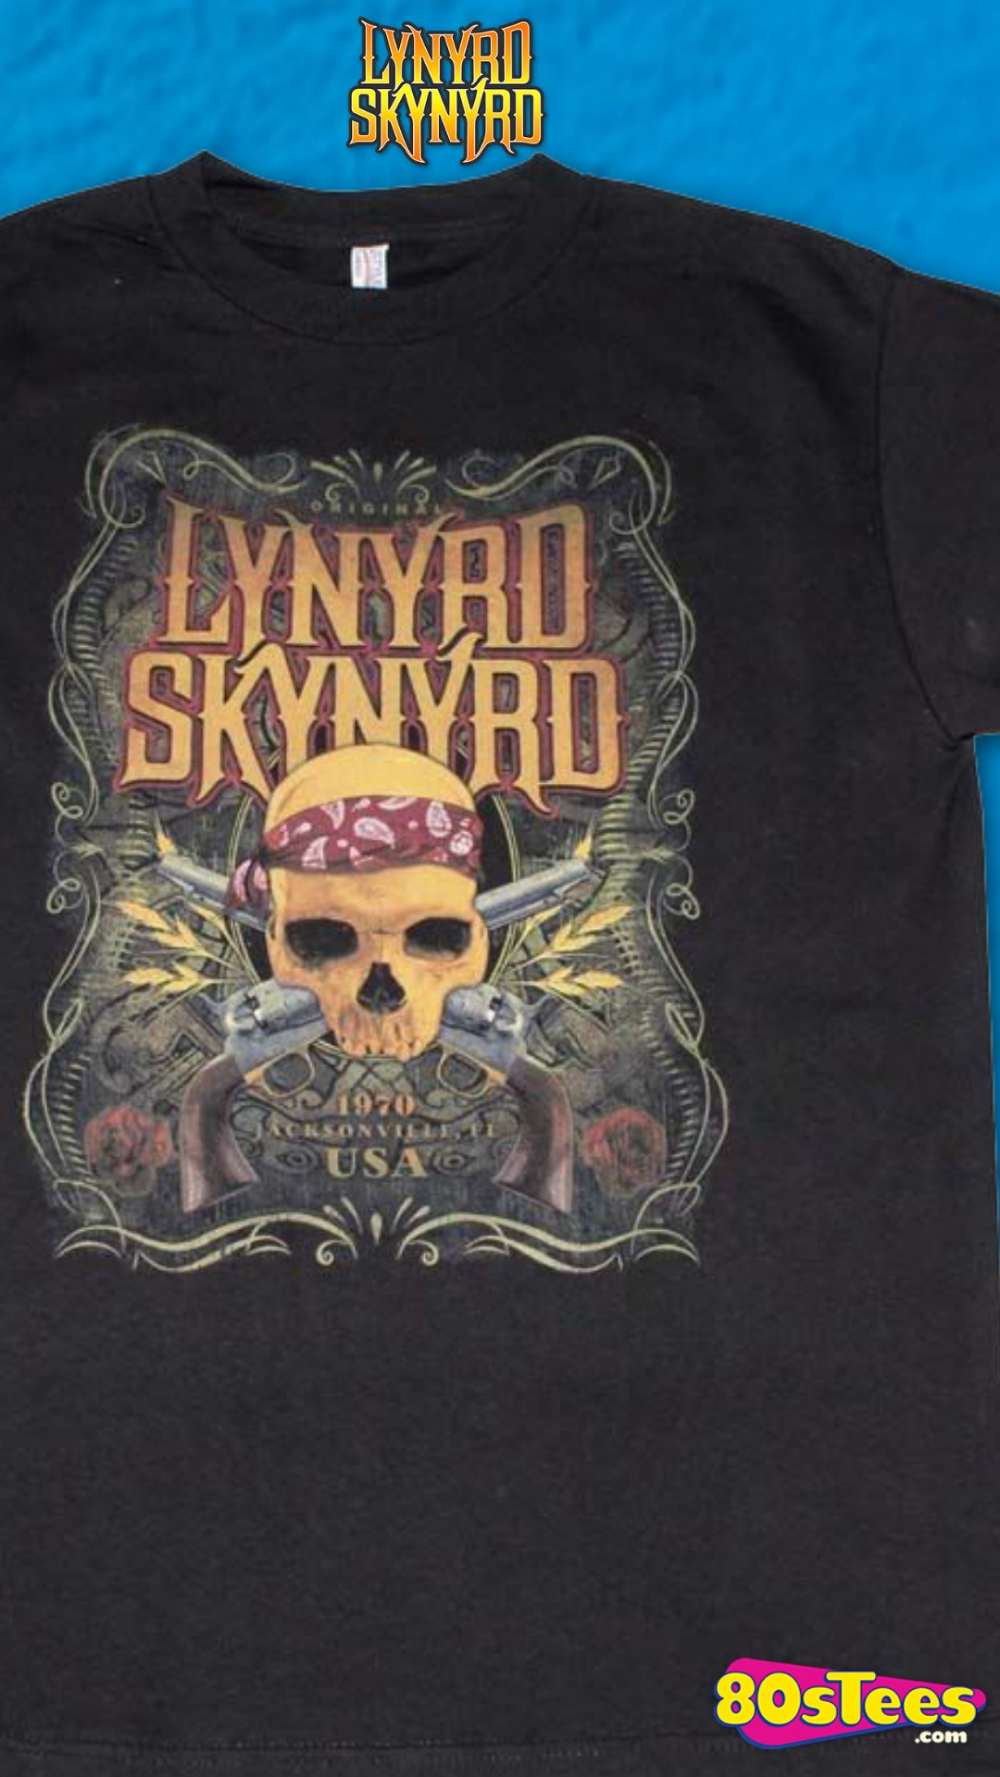 This Lynyrd Skynyrd T Shirt Shows A Skull Wearing A Bandana That Is Positioned With Two Crossed Guns The Shirt Includes Lynyrd Skynyrd T Shirt T Shirt Shirts